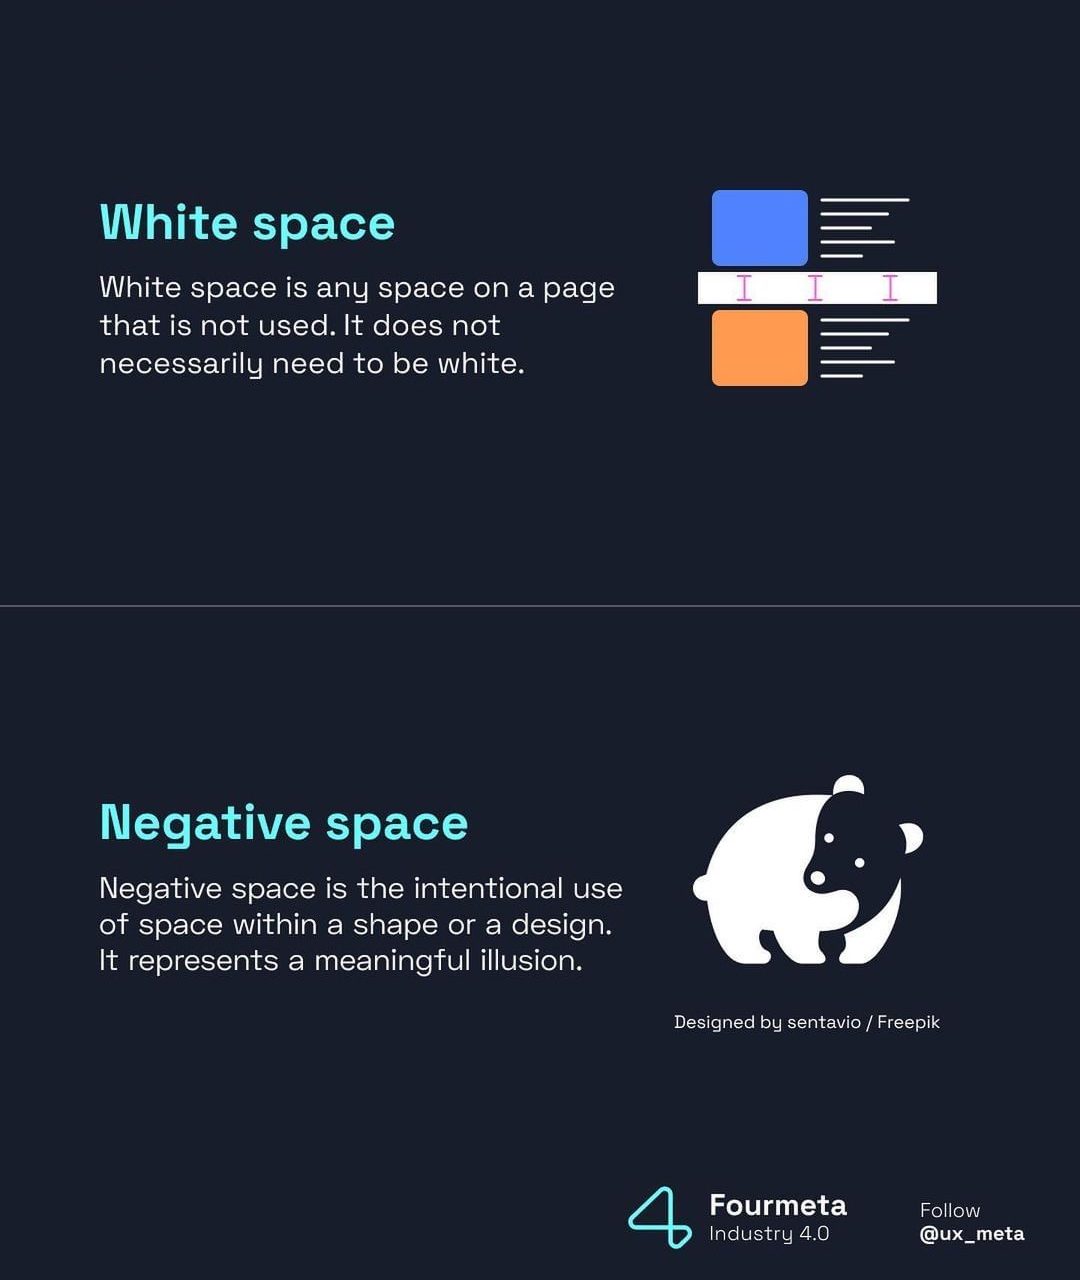 White Space vs. Negative Space - Design Terms Explained